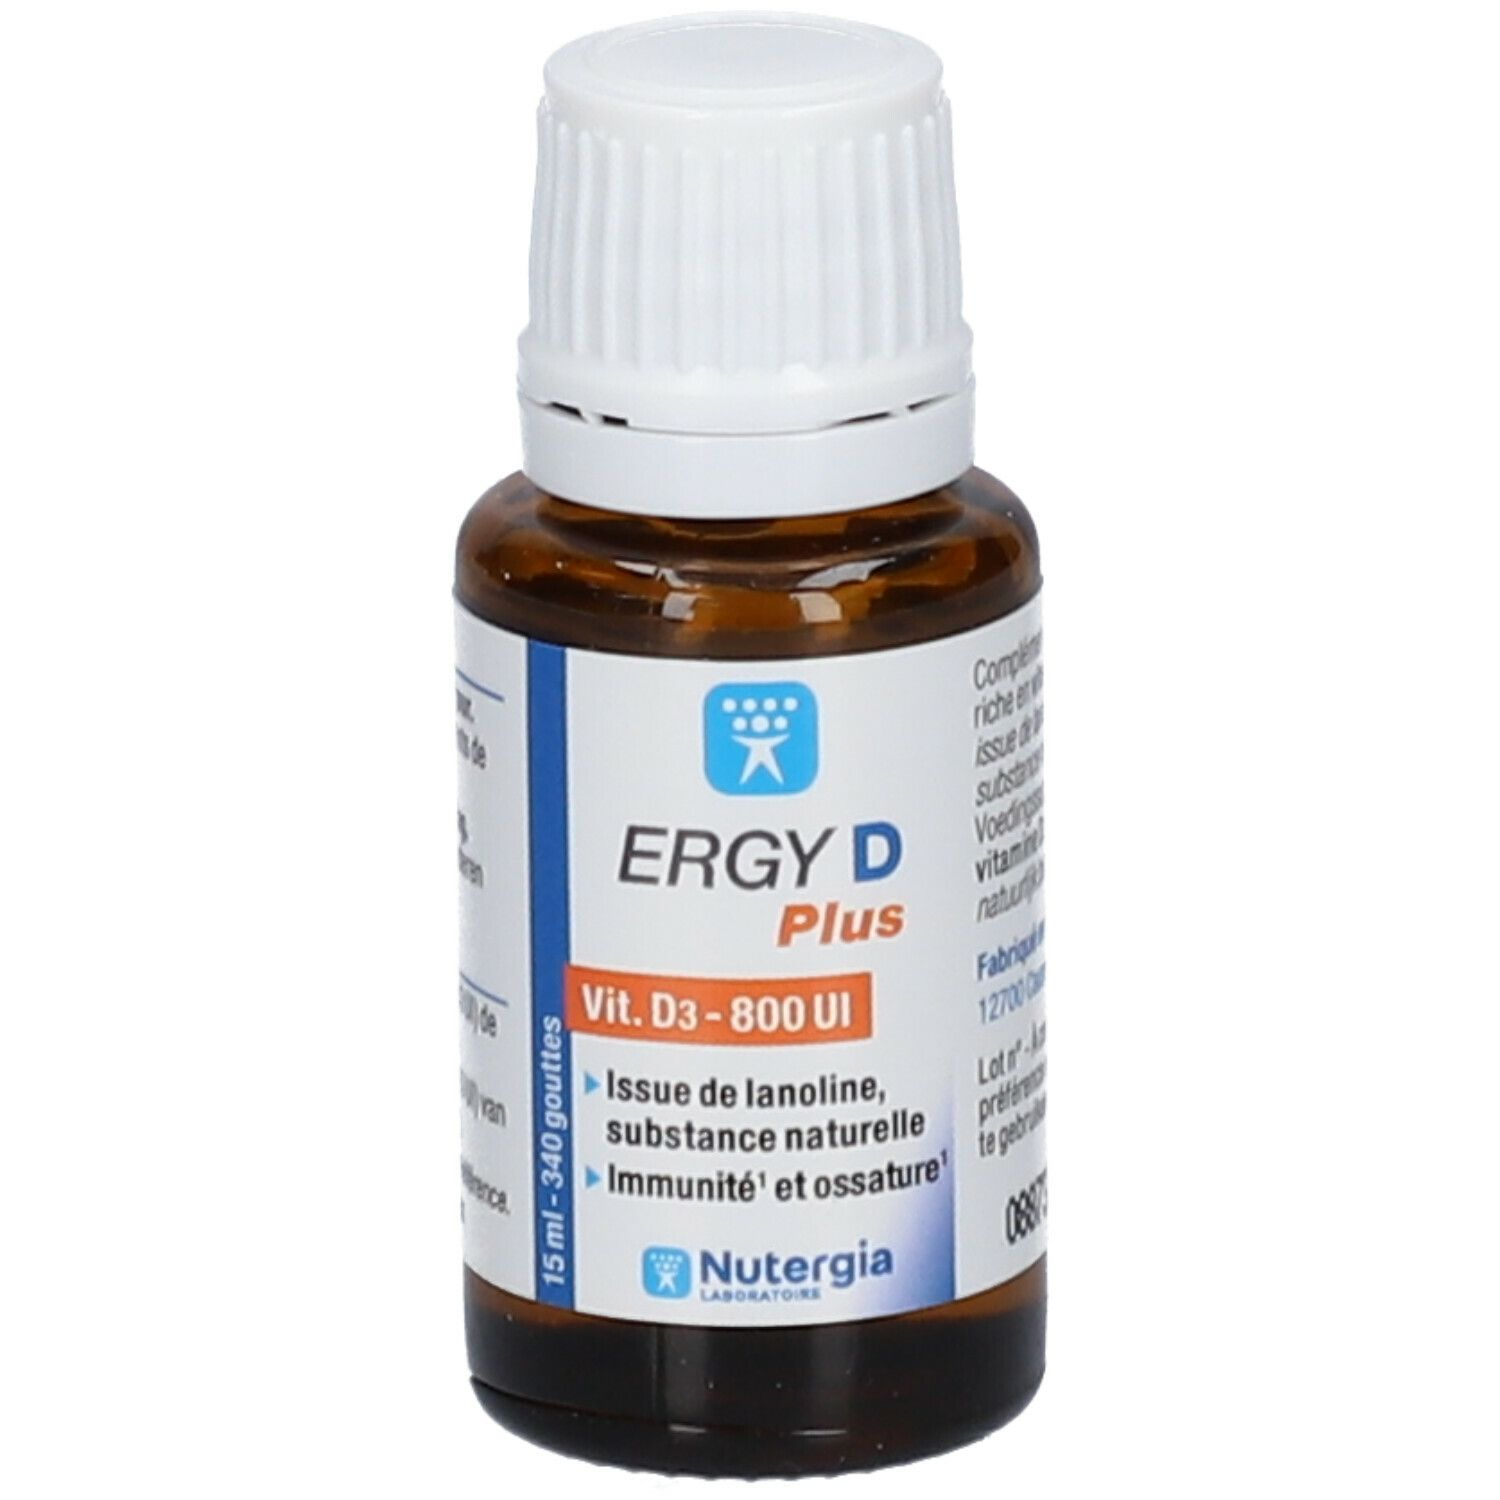 Image of Nutergia Ergy D Plus